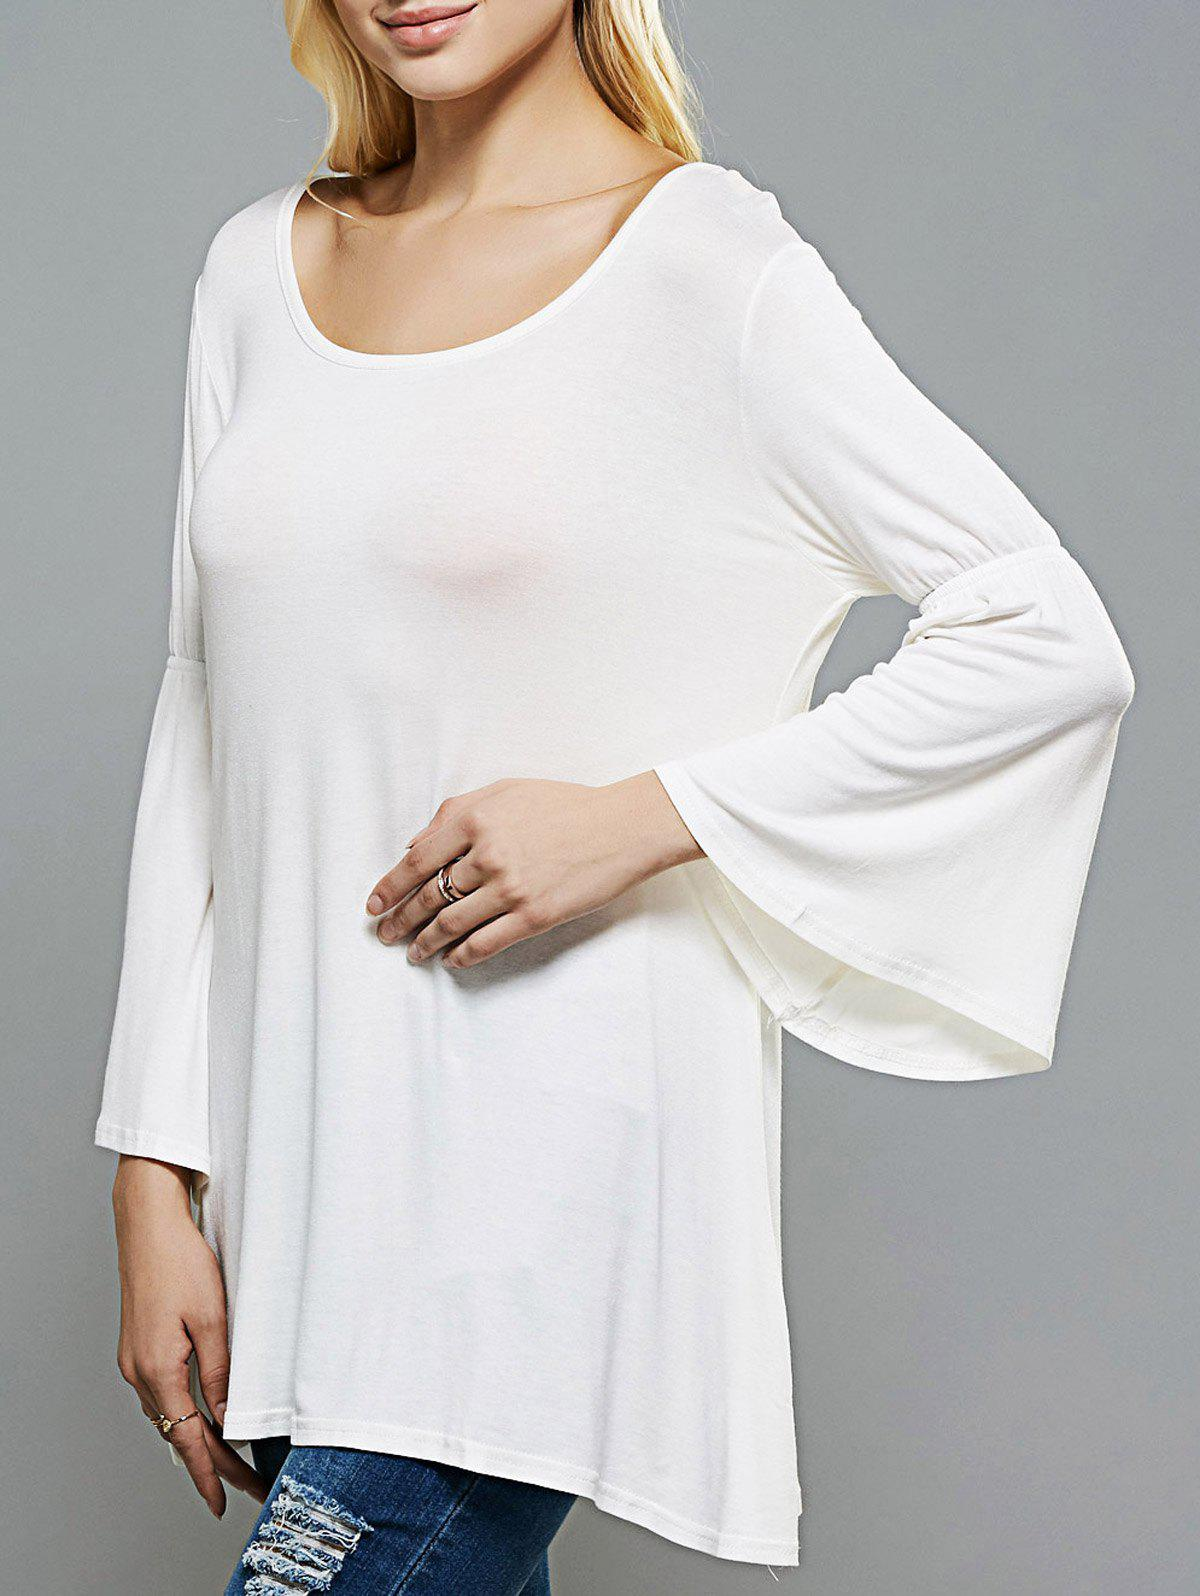 Scoop Neck Flare Sleeve Longline Swing T-Shirt - WHITE XL